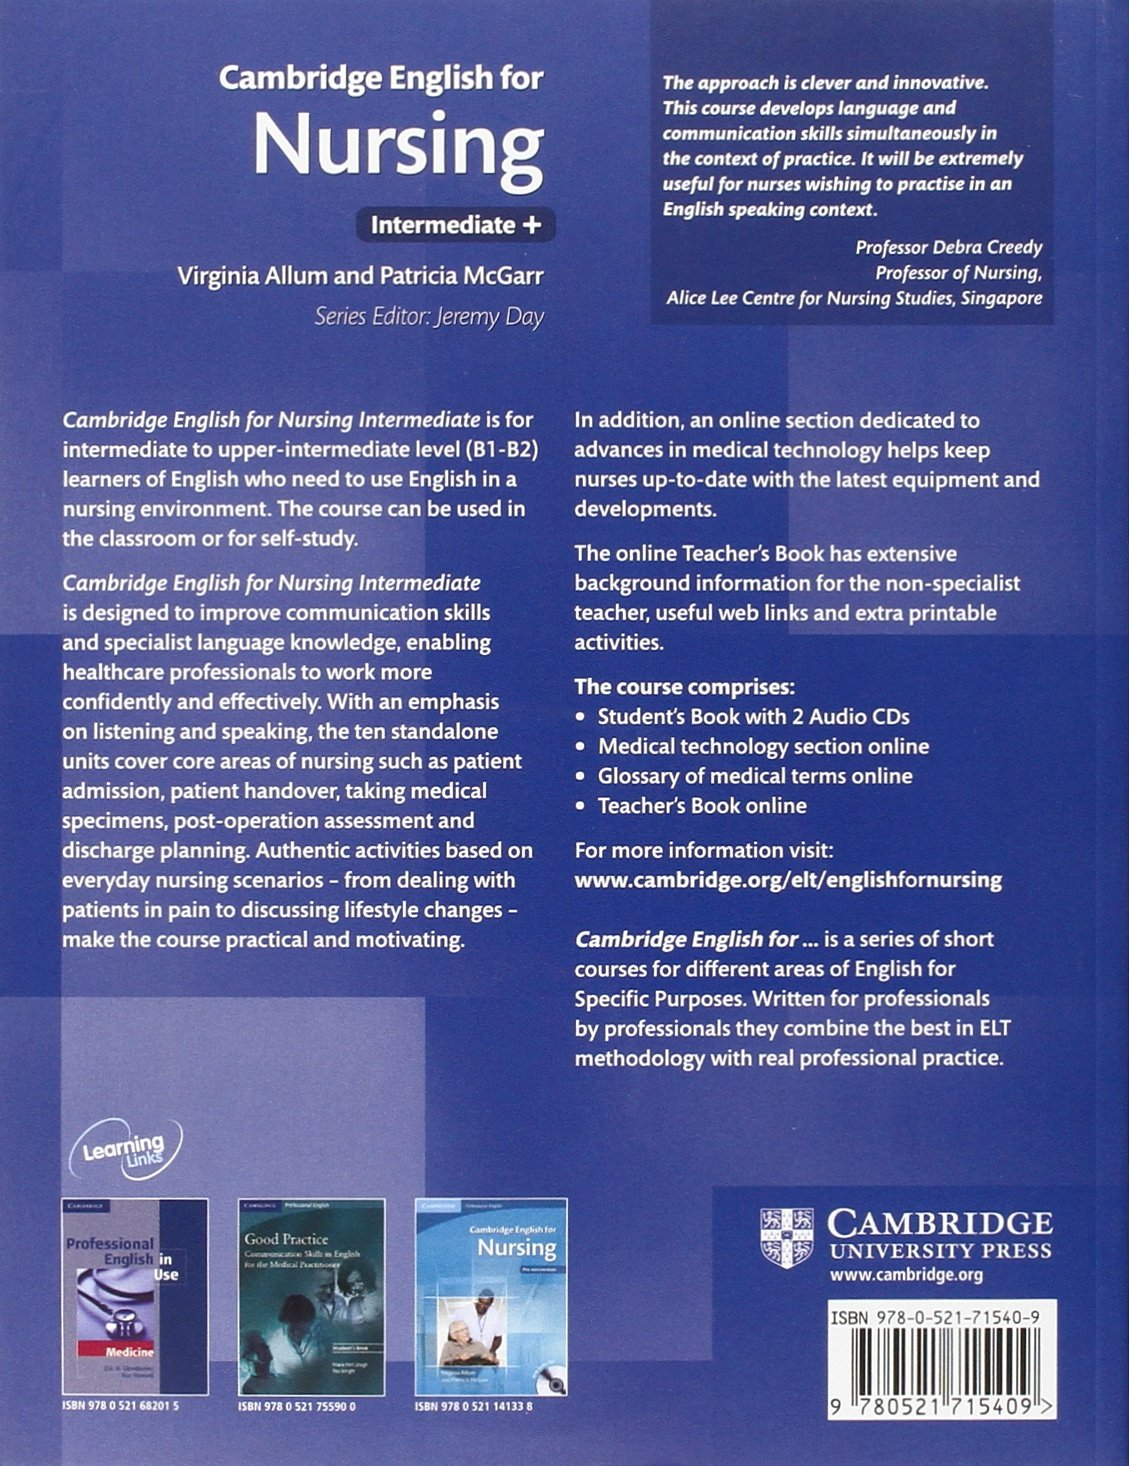 Cambridge English for Nursing Intermediate Plus Student's Book with Audio CDs (2) (Cambridge English for Series) by imusti